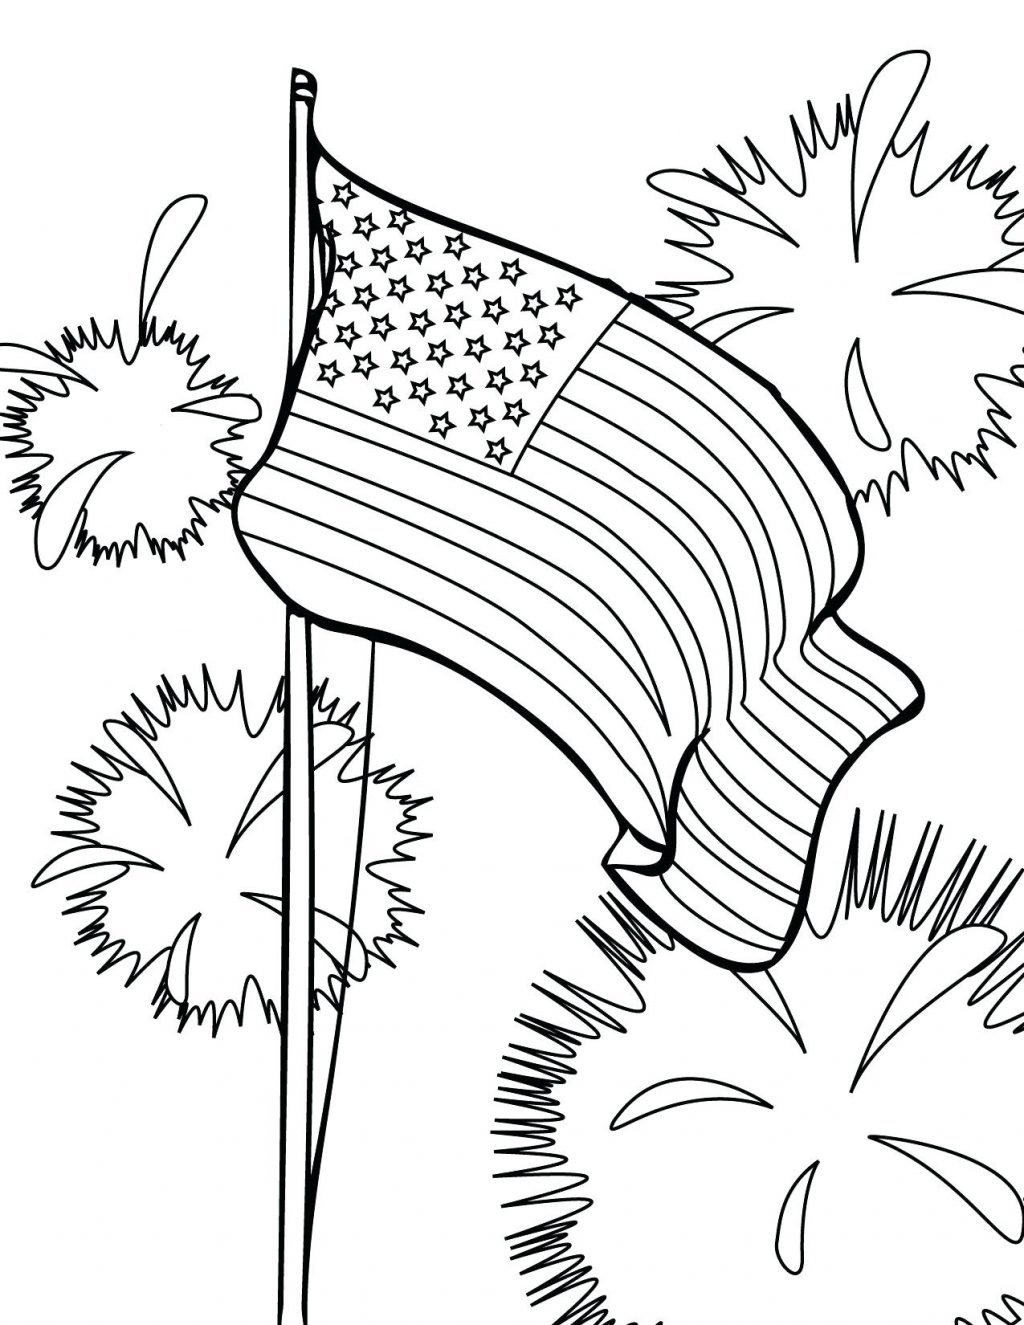 1024x1325 Coloring Pages Flag Coloring Pages Fireworks Free Printable Day